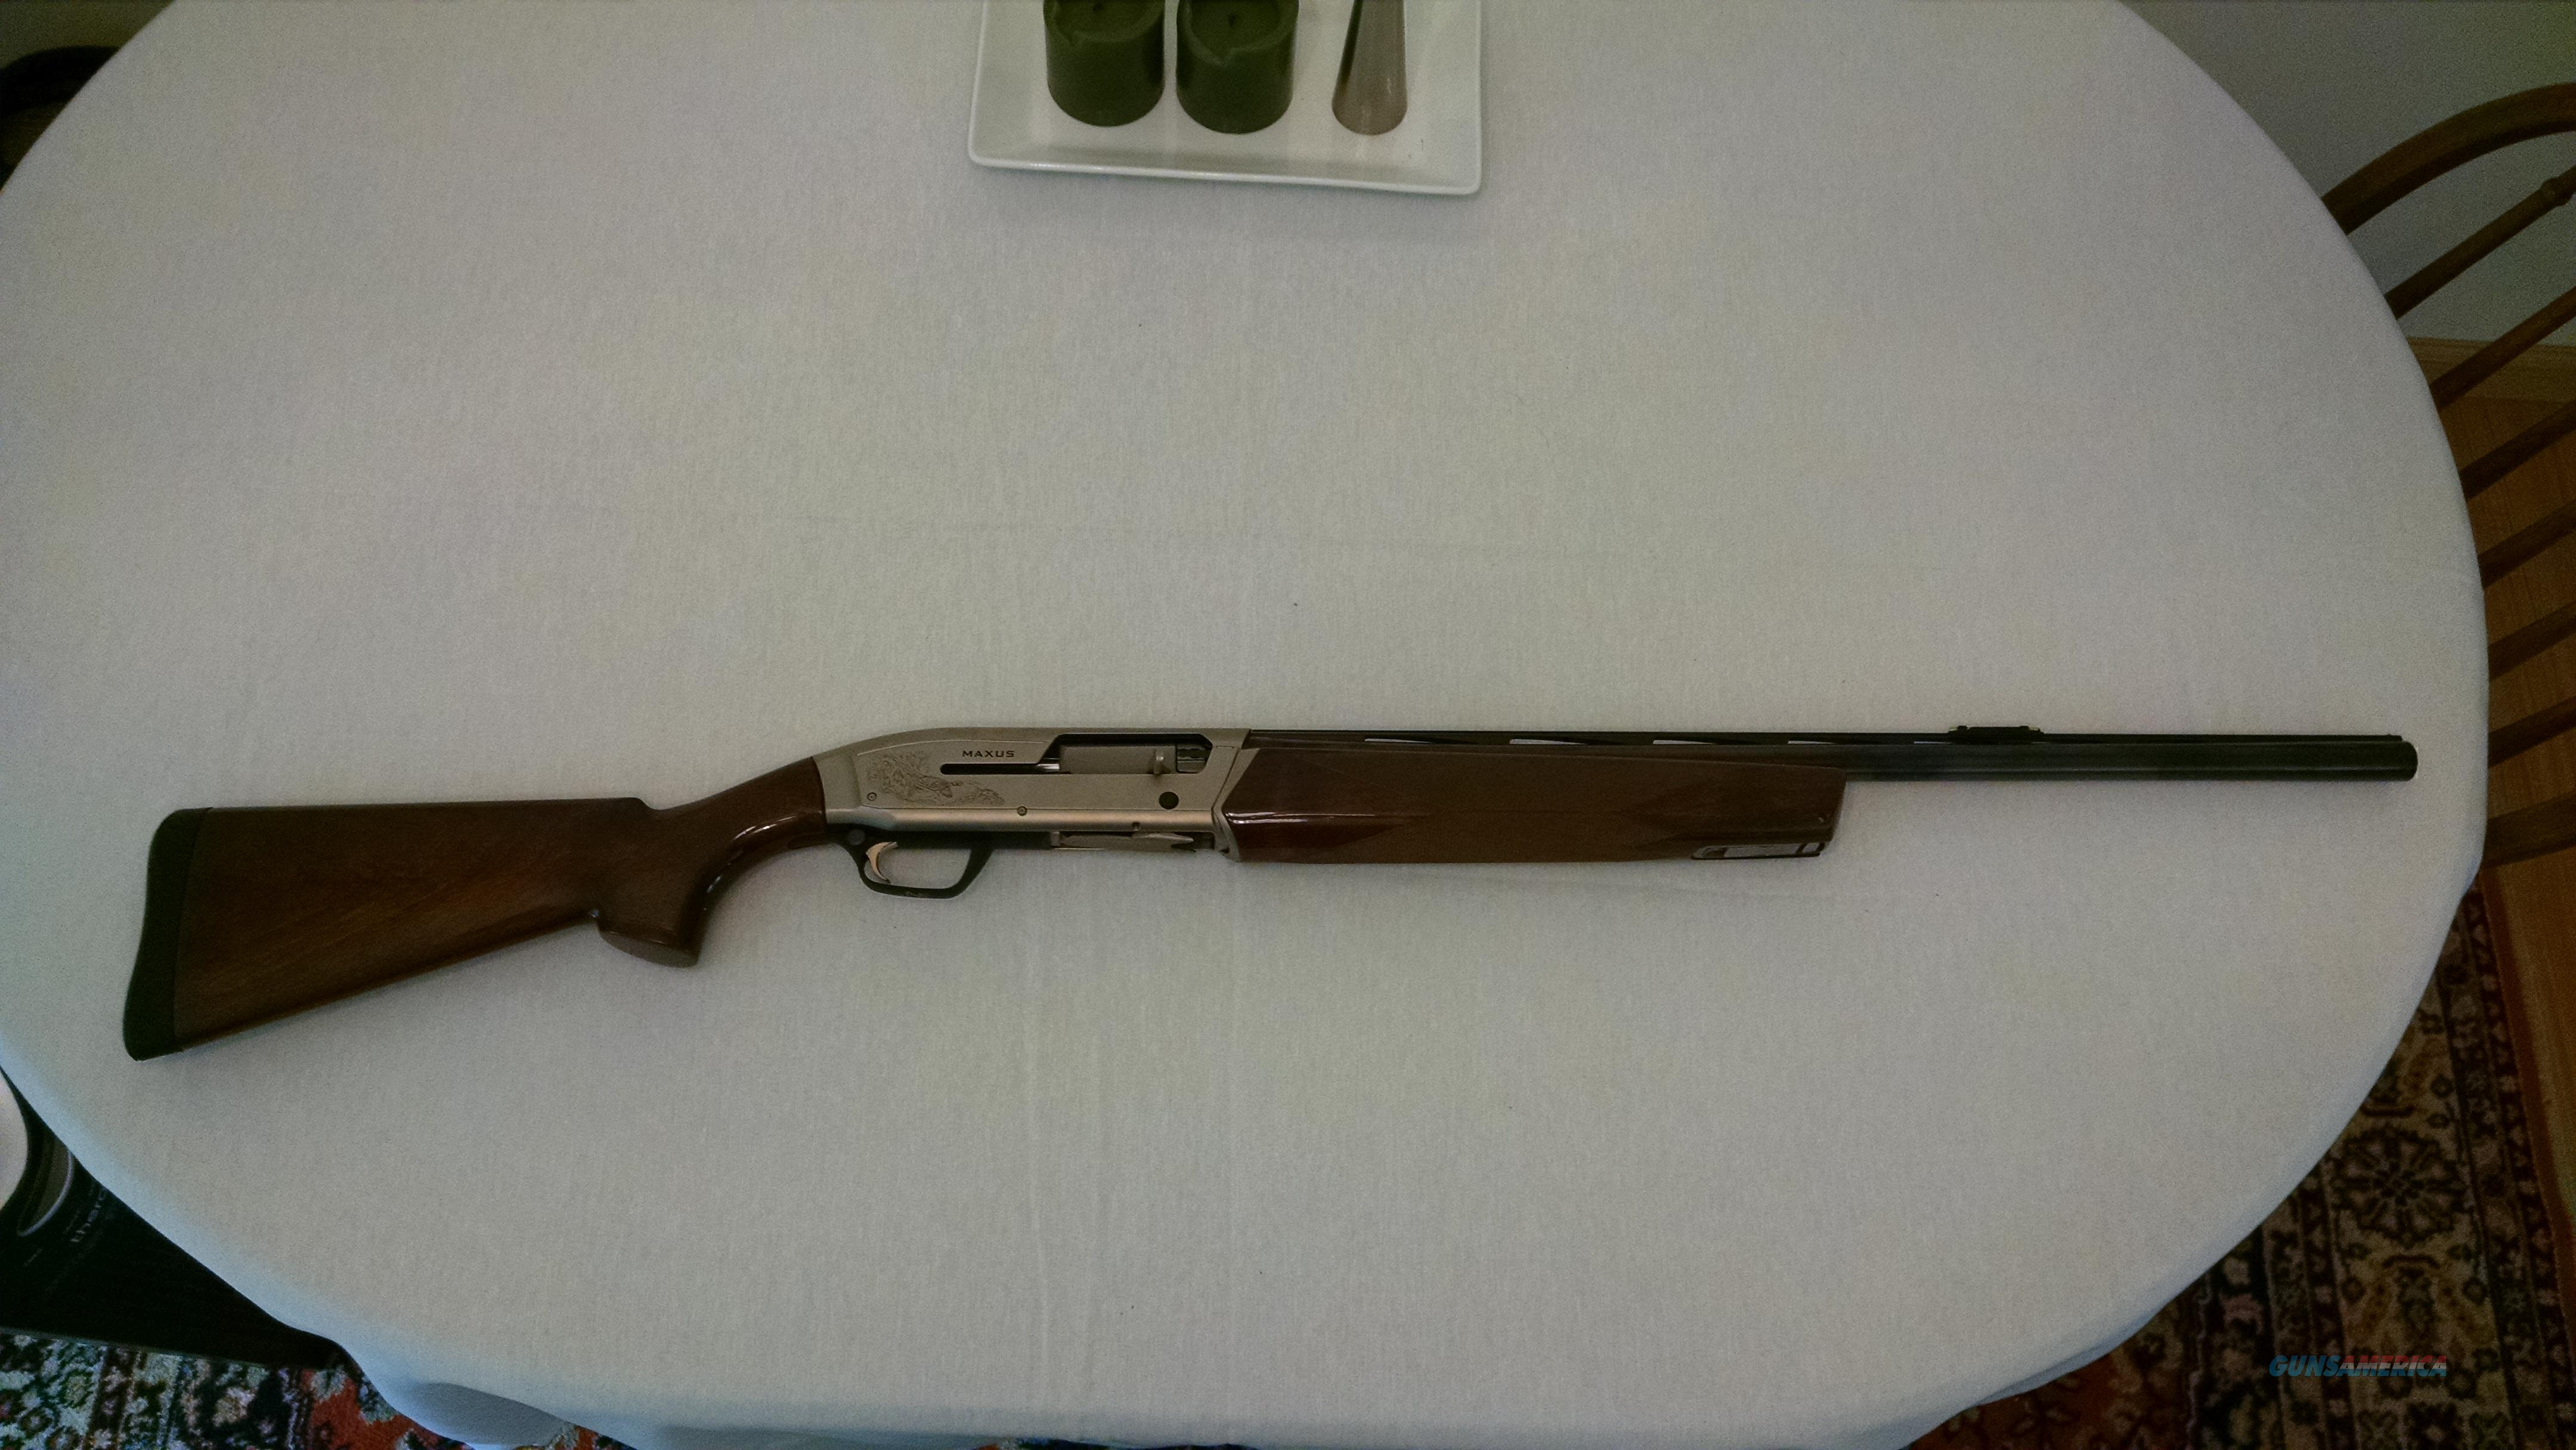 Browning Maxus Hunter 12 gauge  Guns > Shotguns > Browning Shotguns > Autoloaders > Hunting